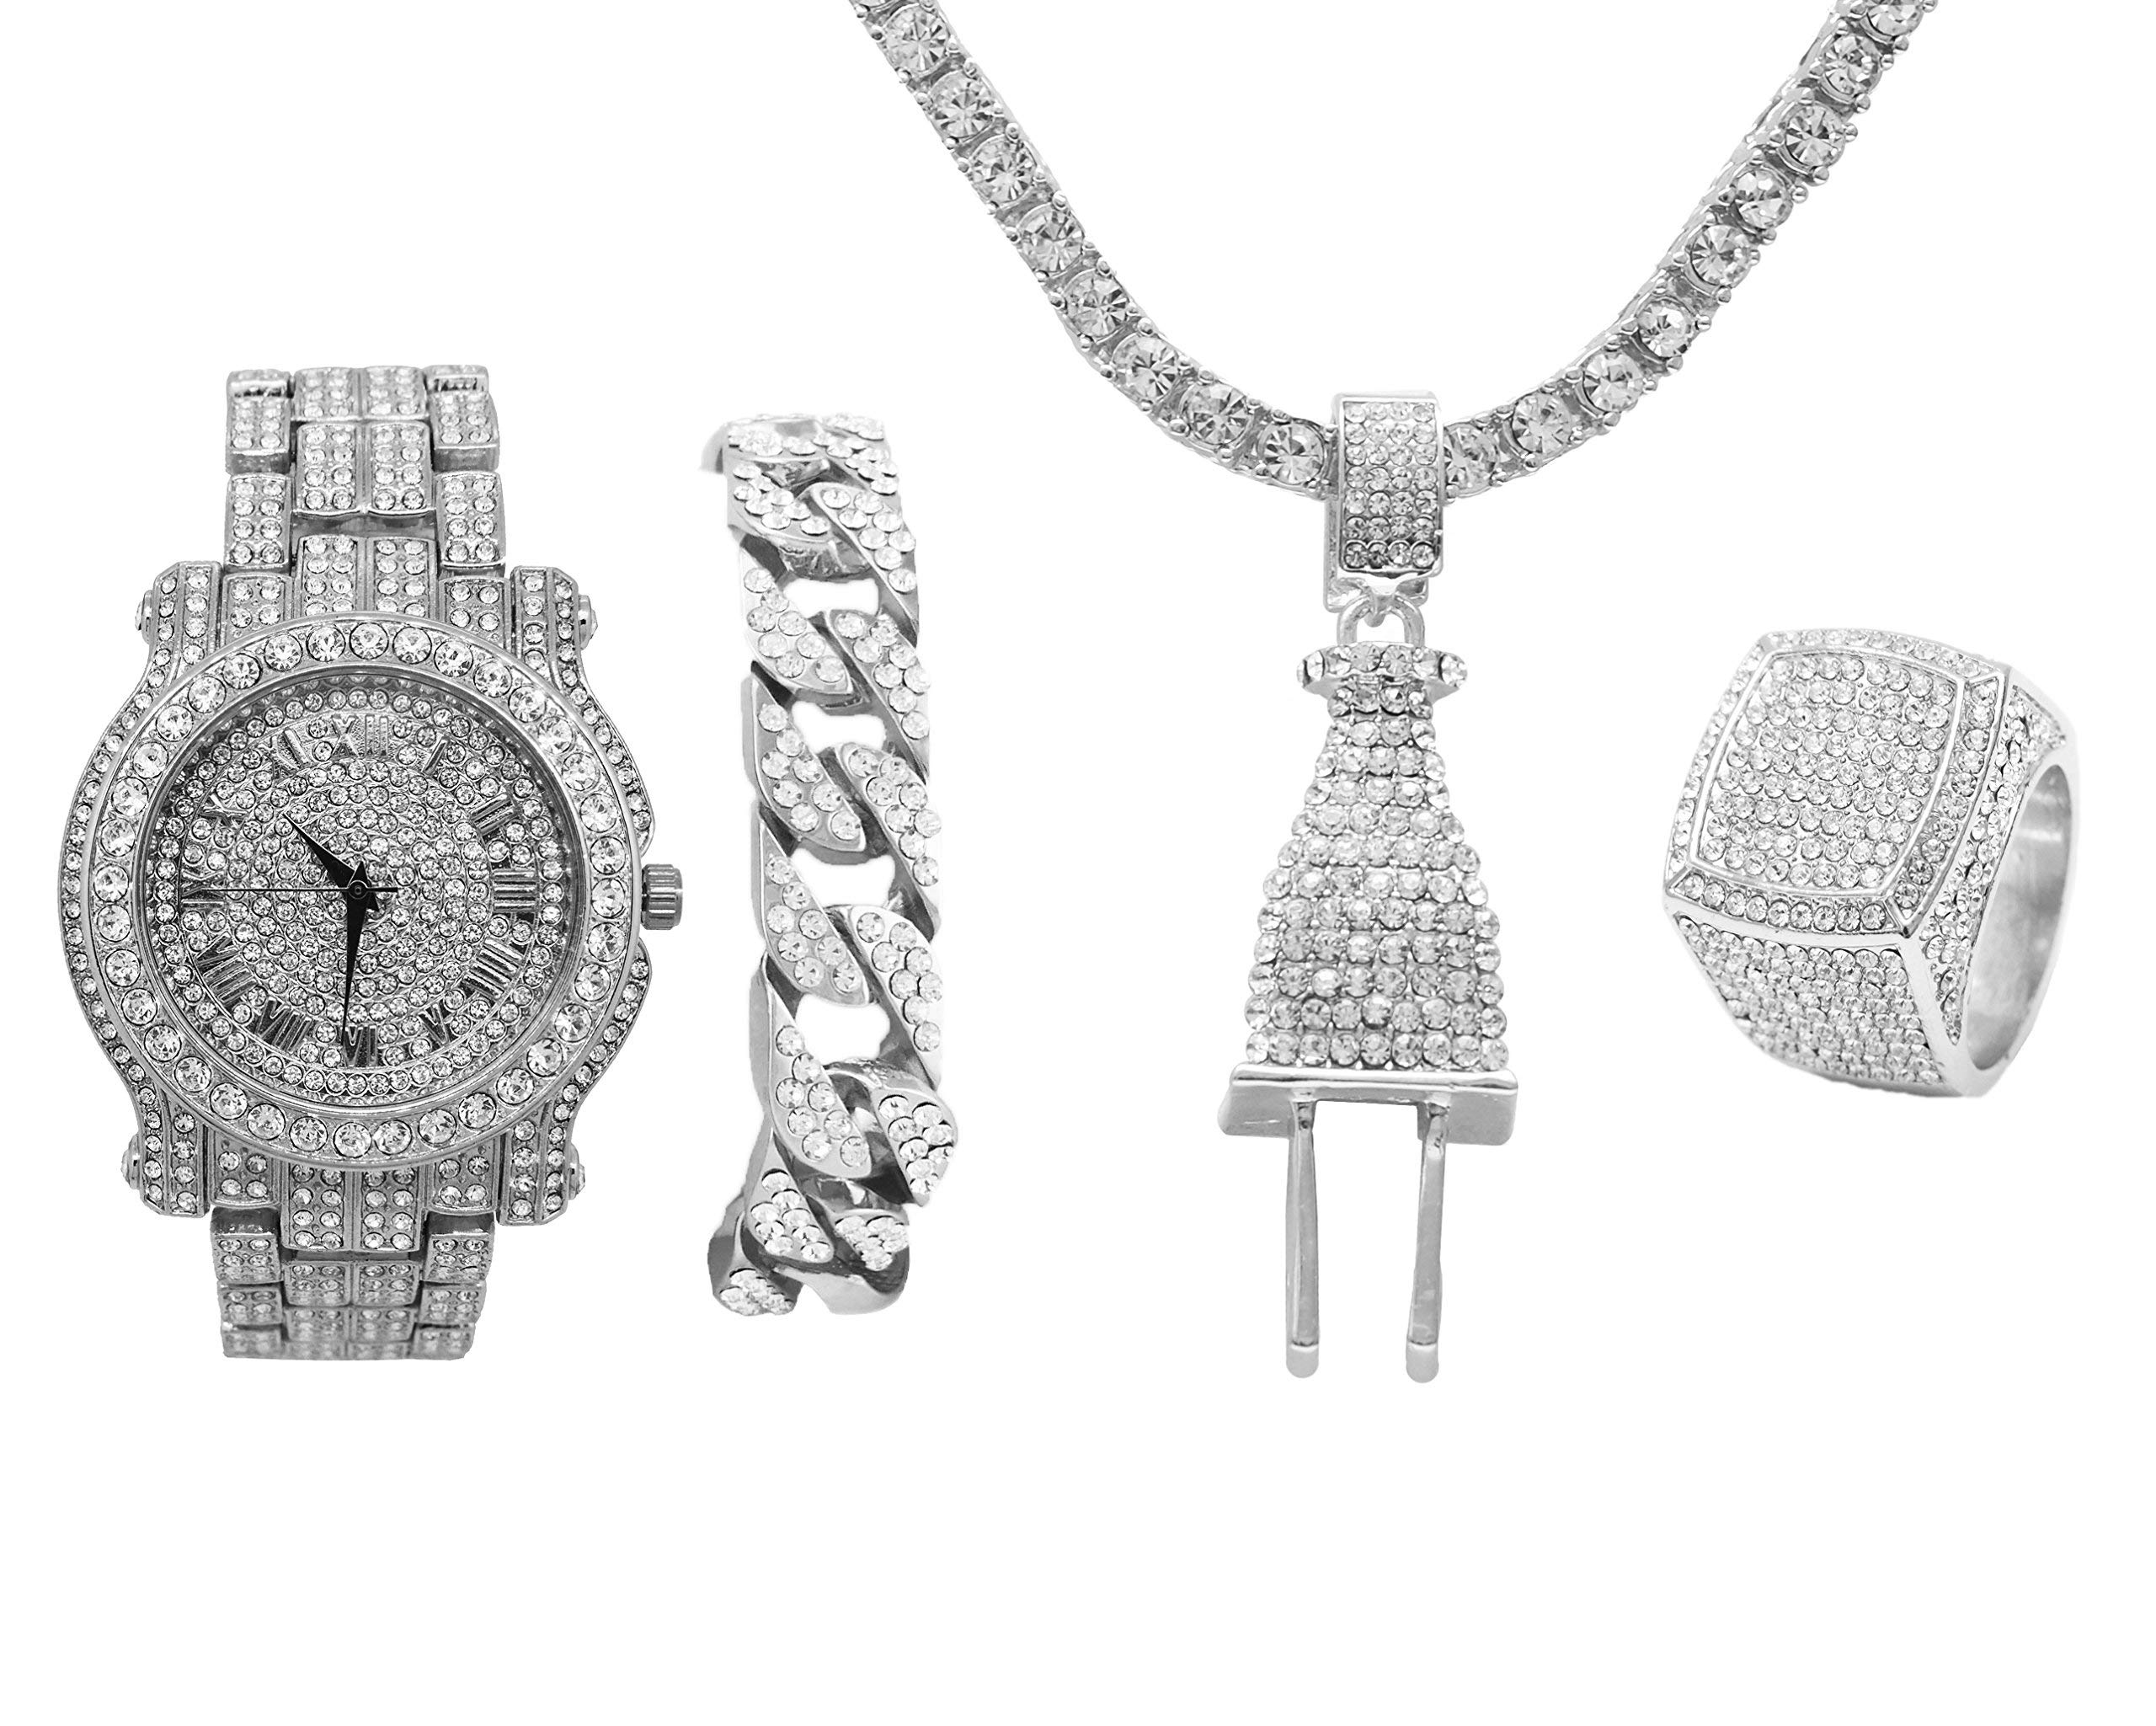 Bling-ed Out Plug Hip Hop Pendant - Iced Out Luxury Watch Covered with Crystal Clear Rhinestones - Silver Iced Cuban Bracelet and Bling Ring Gift Set - Shine Like a Celebrity - L0504Slv4 (9)